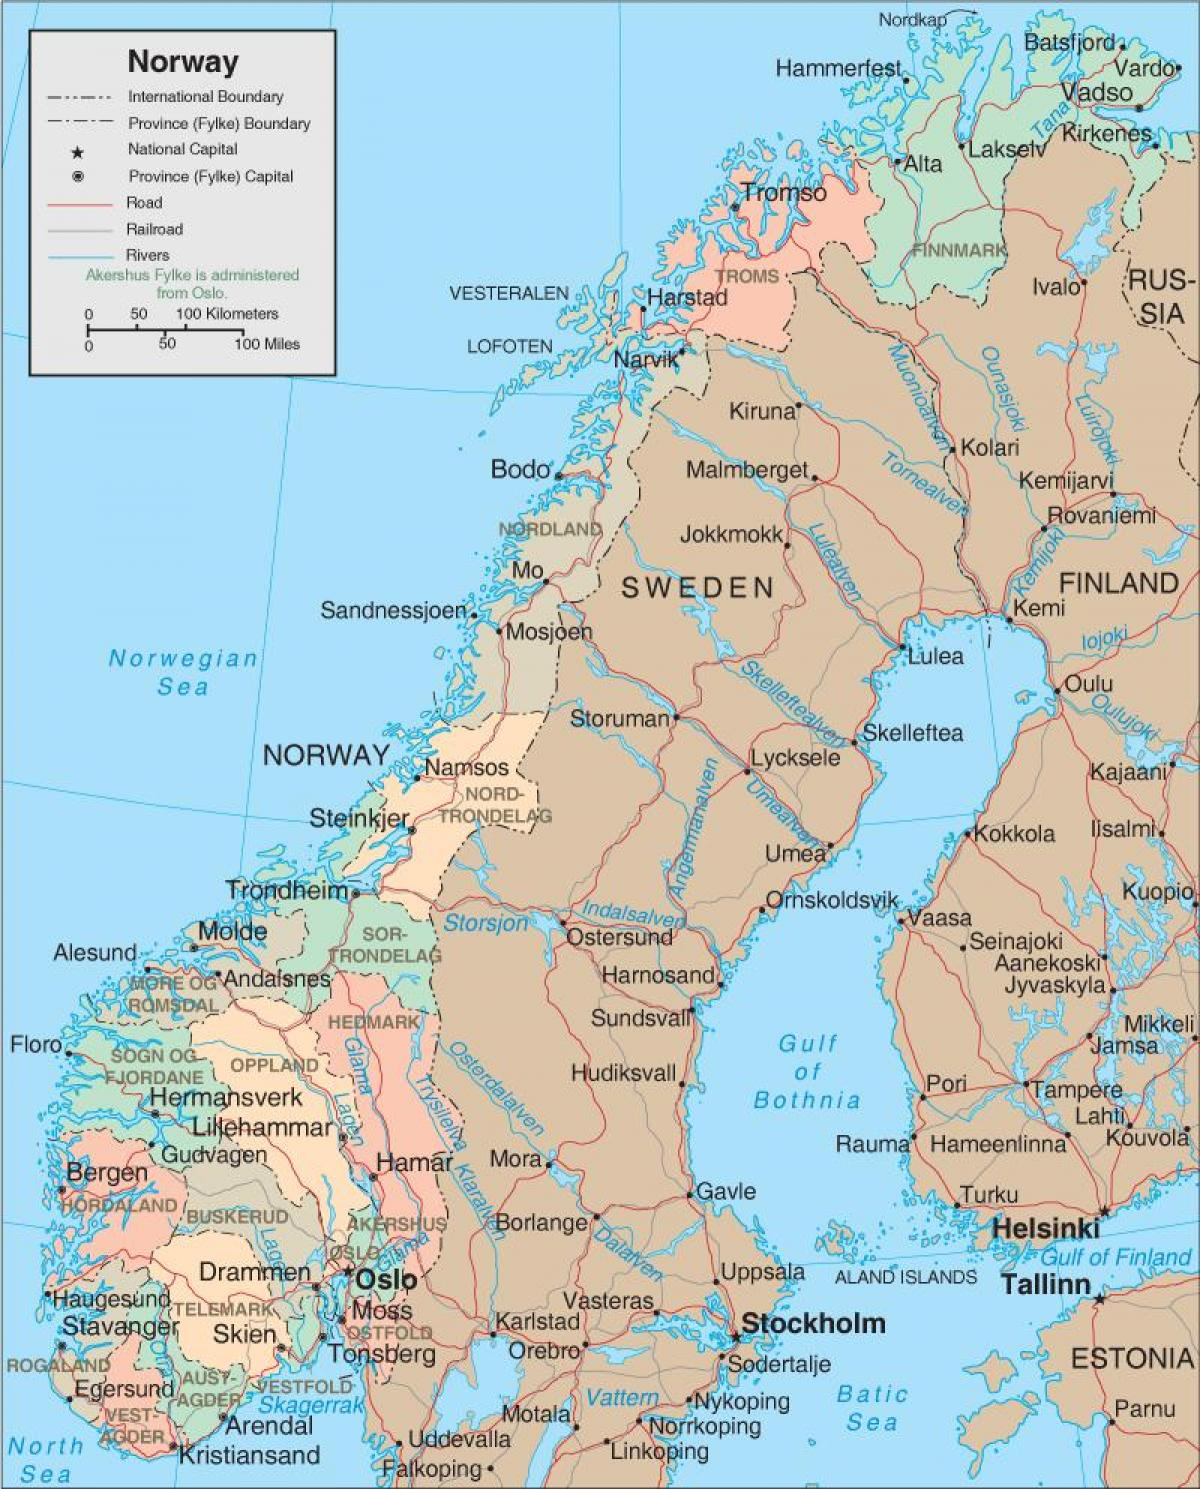 a map of Norway